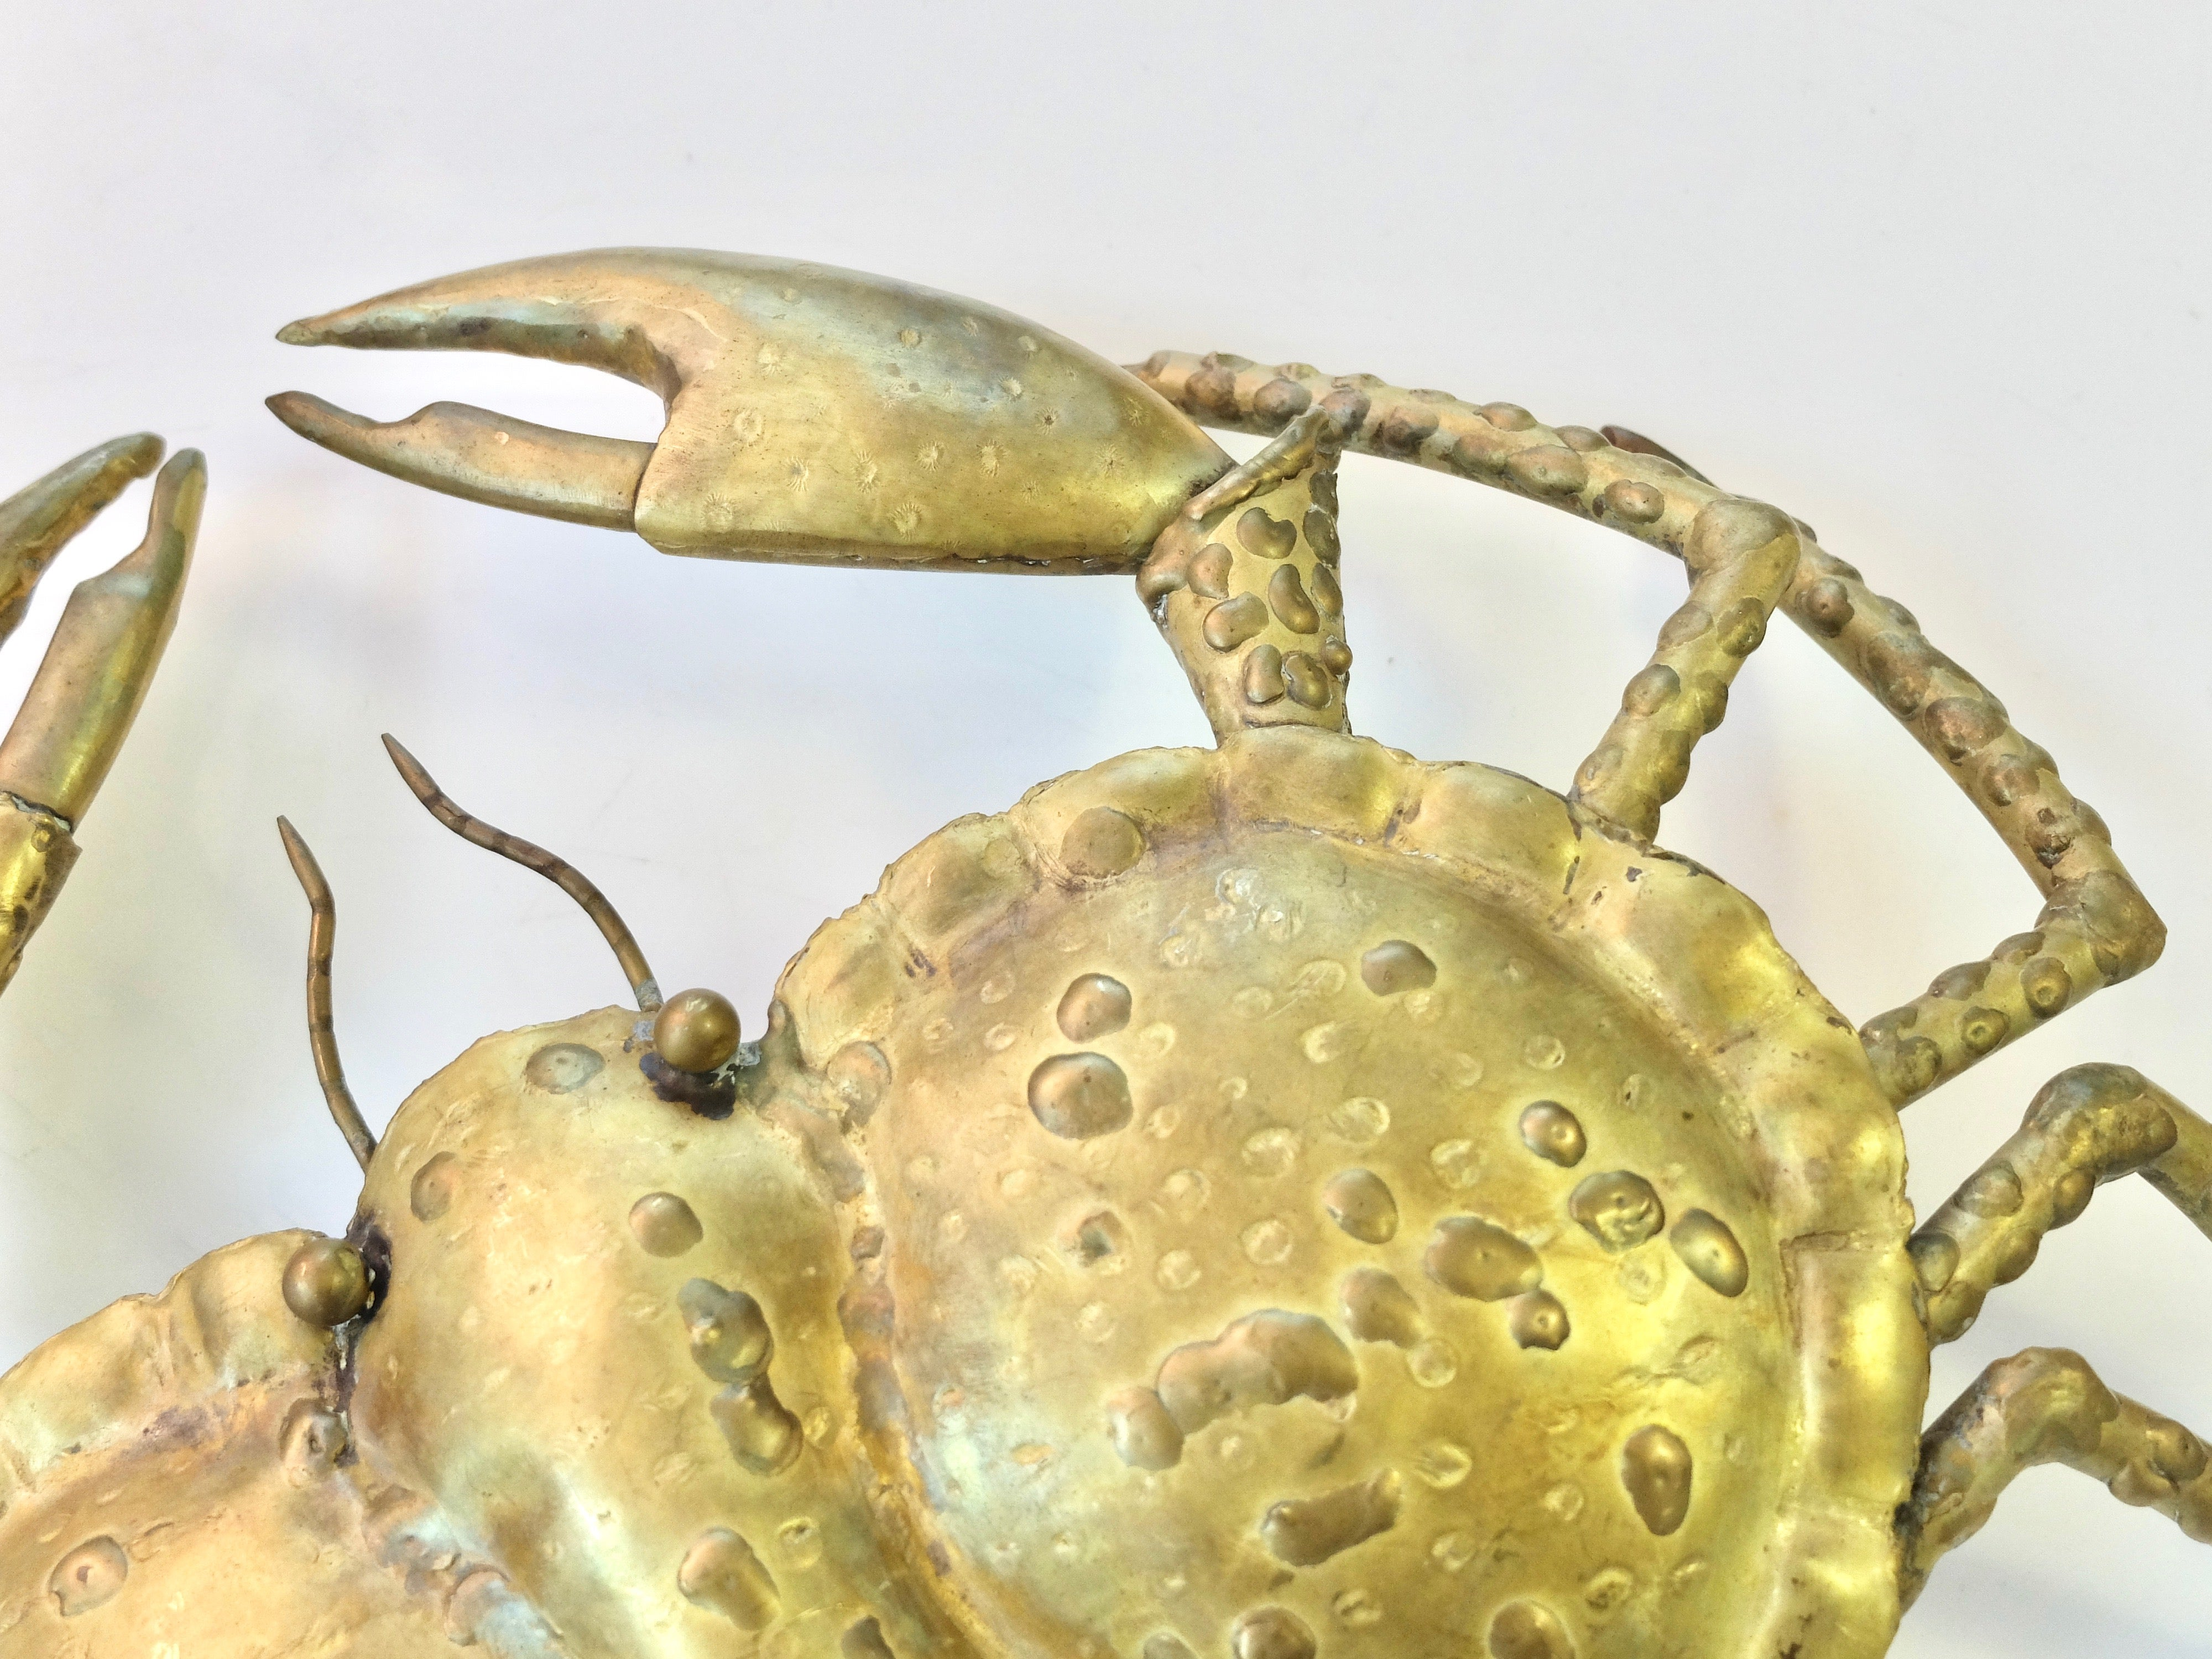 Attractive Large Crab Wall Decor Model - All About Wallart ...